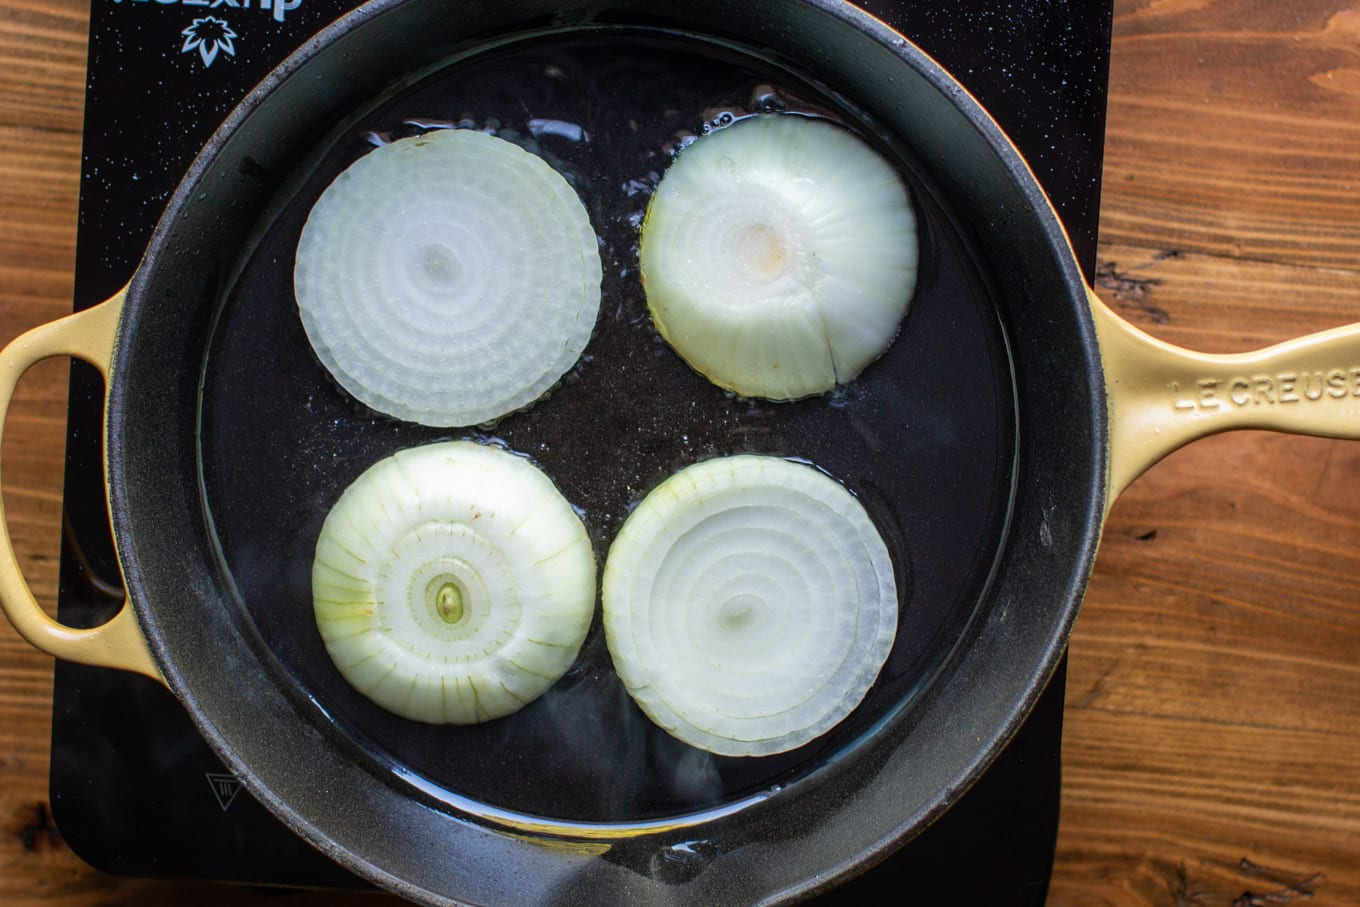 4 slices of yellow onion frying in a cast iron pan.